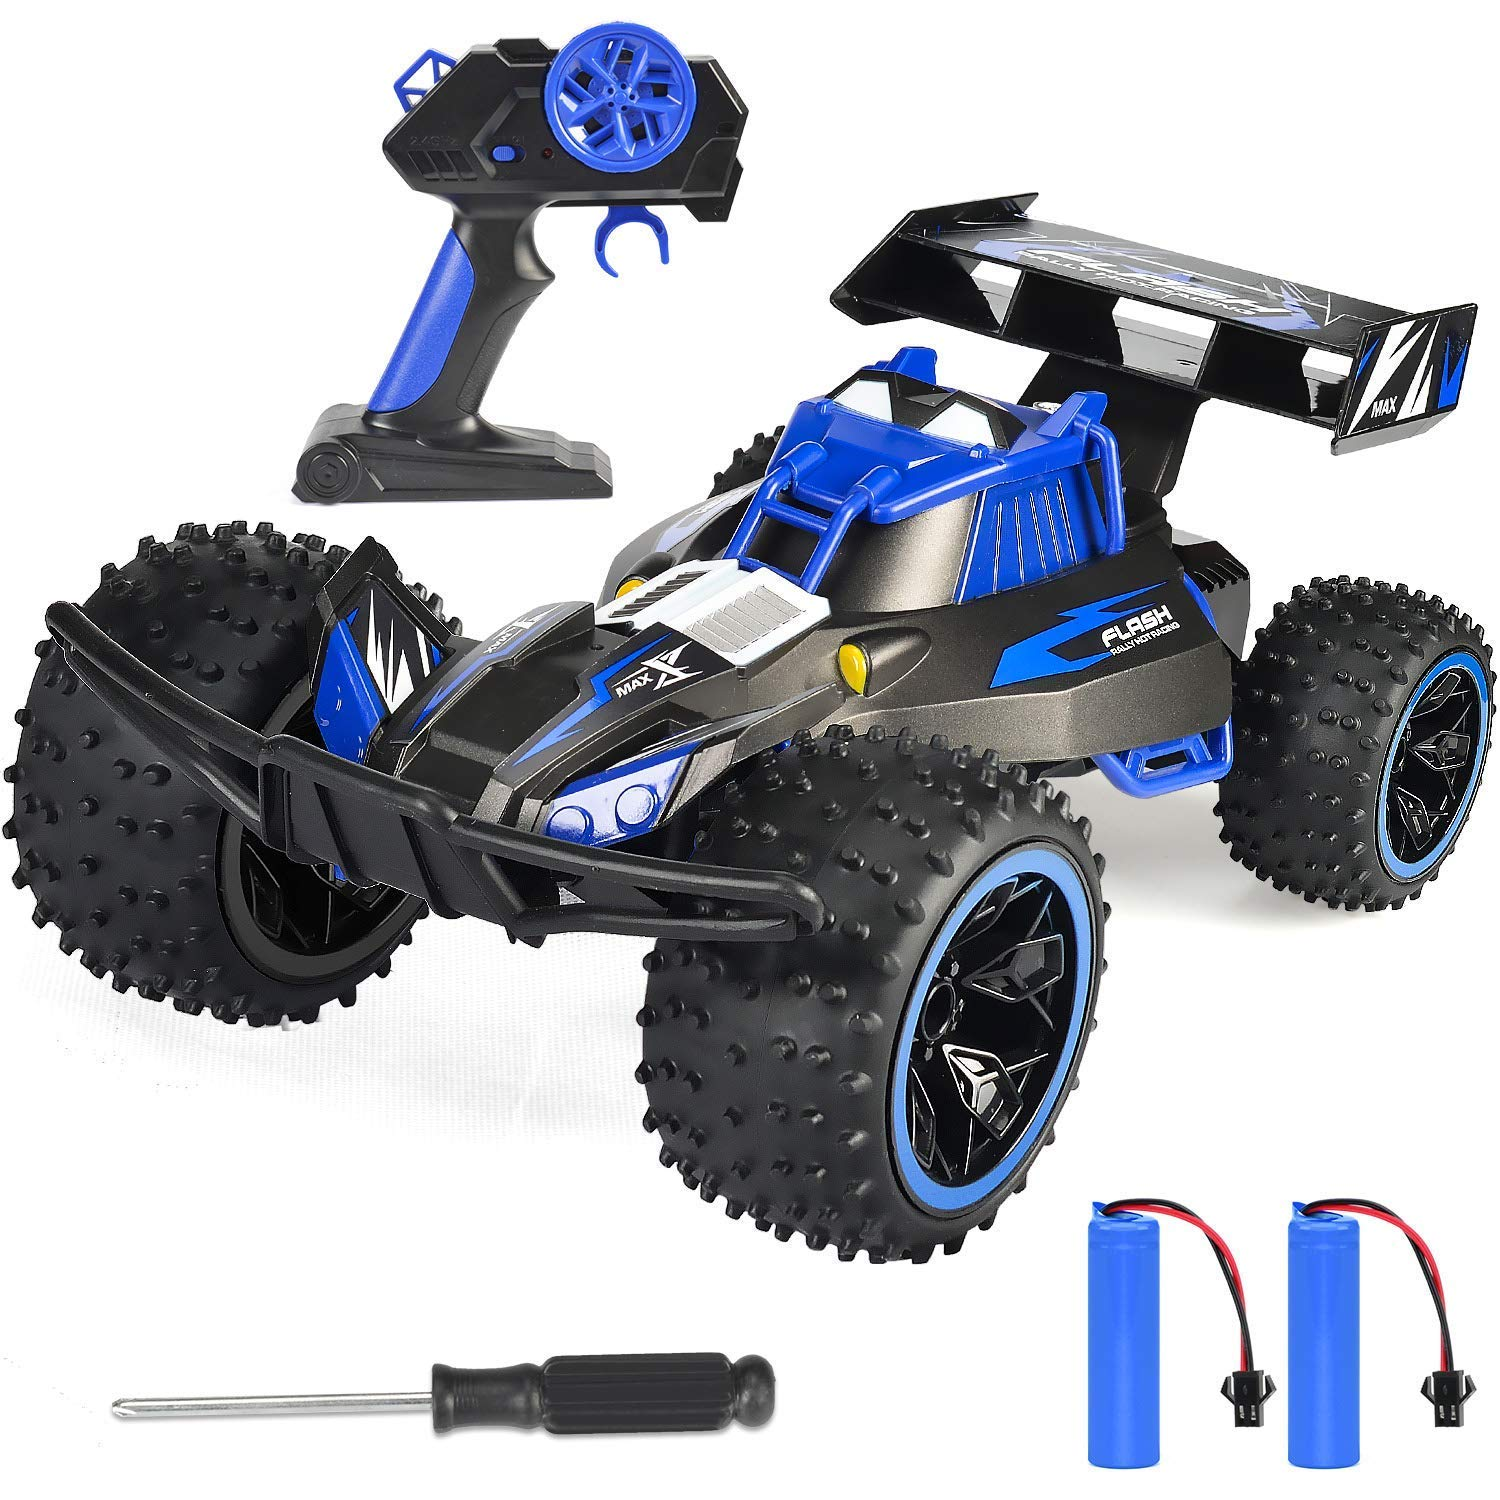 RC Car, NQD 2019 Updated 1/16 Scale High Speed Remote Control Car, 2.4Ghz Off Road RC Trucks with Two Rechargeable Batteries, Electric Toy Car for Toy Gifts for 2, 3, 4, 5, 6, 7, 8 Year Old Boy 81AjKMc-z0L